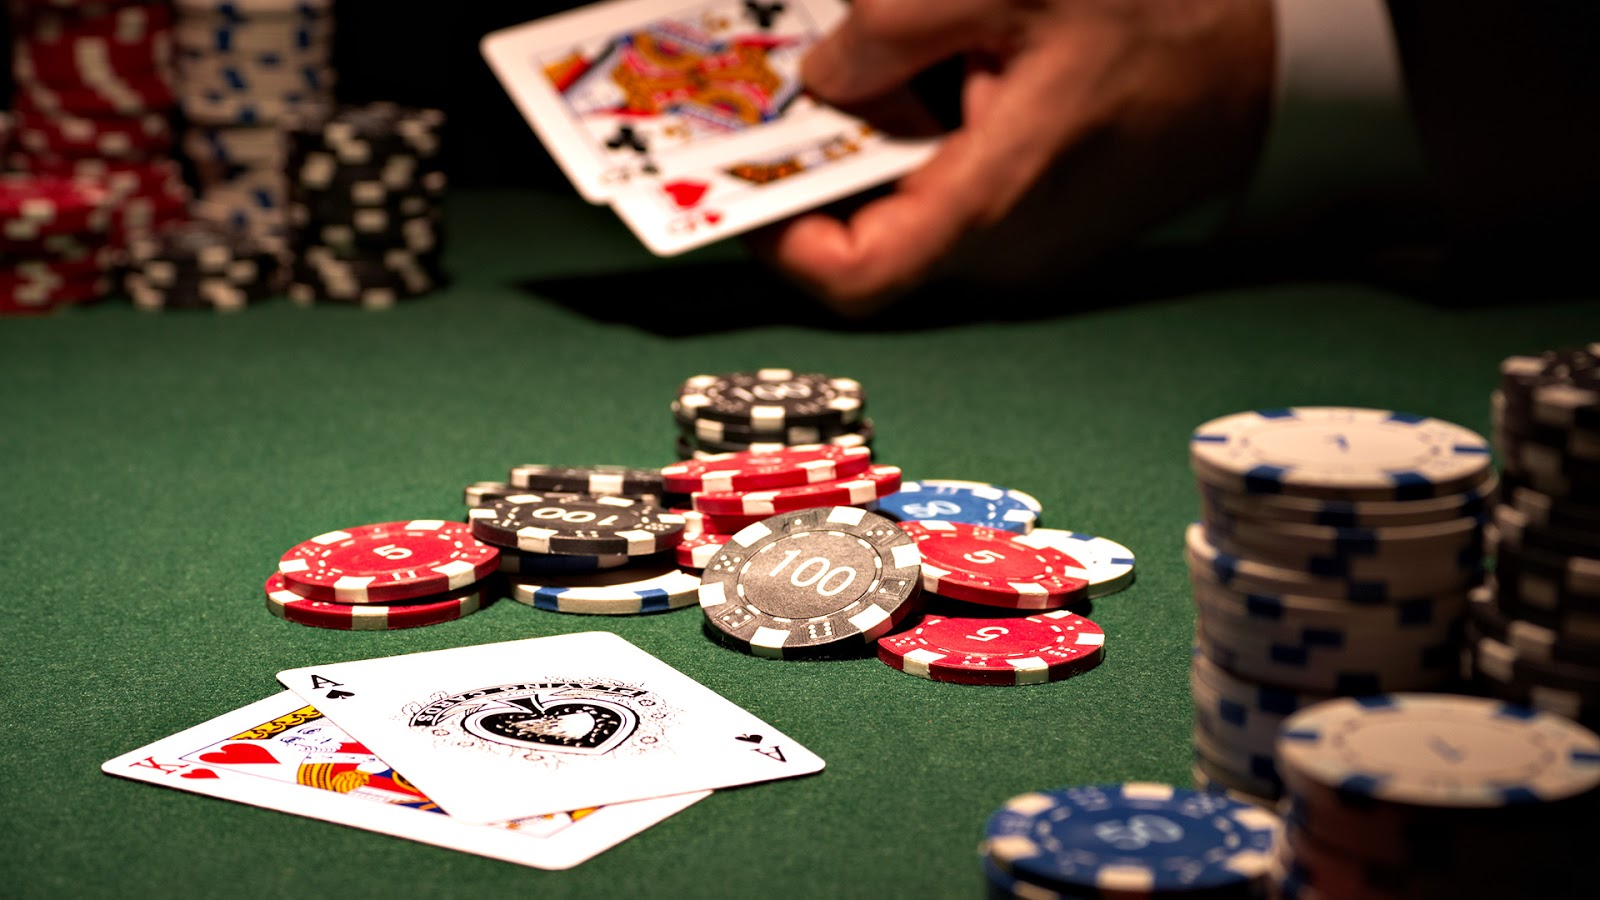 Poker Online Terpercaya: How can you find a Trustworthy Online Gambling Site?